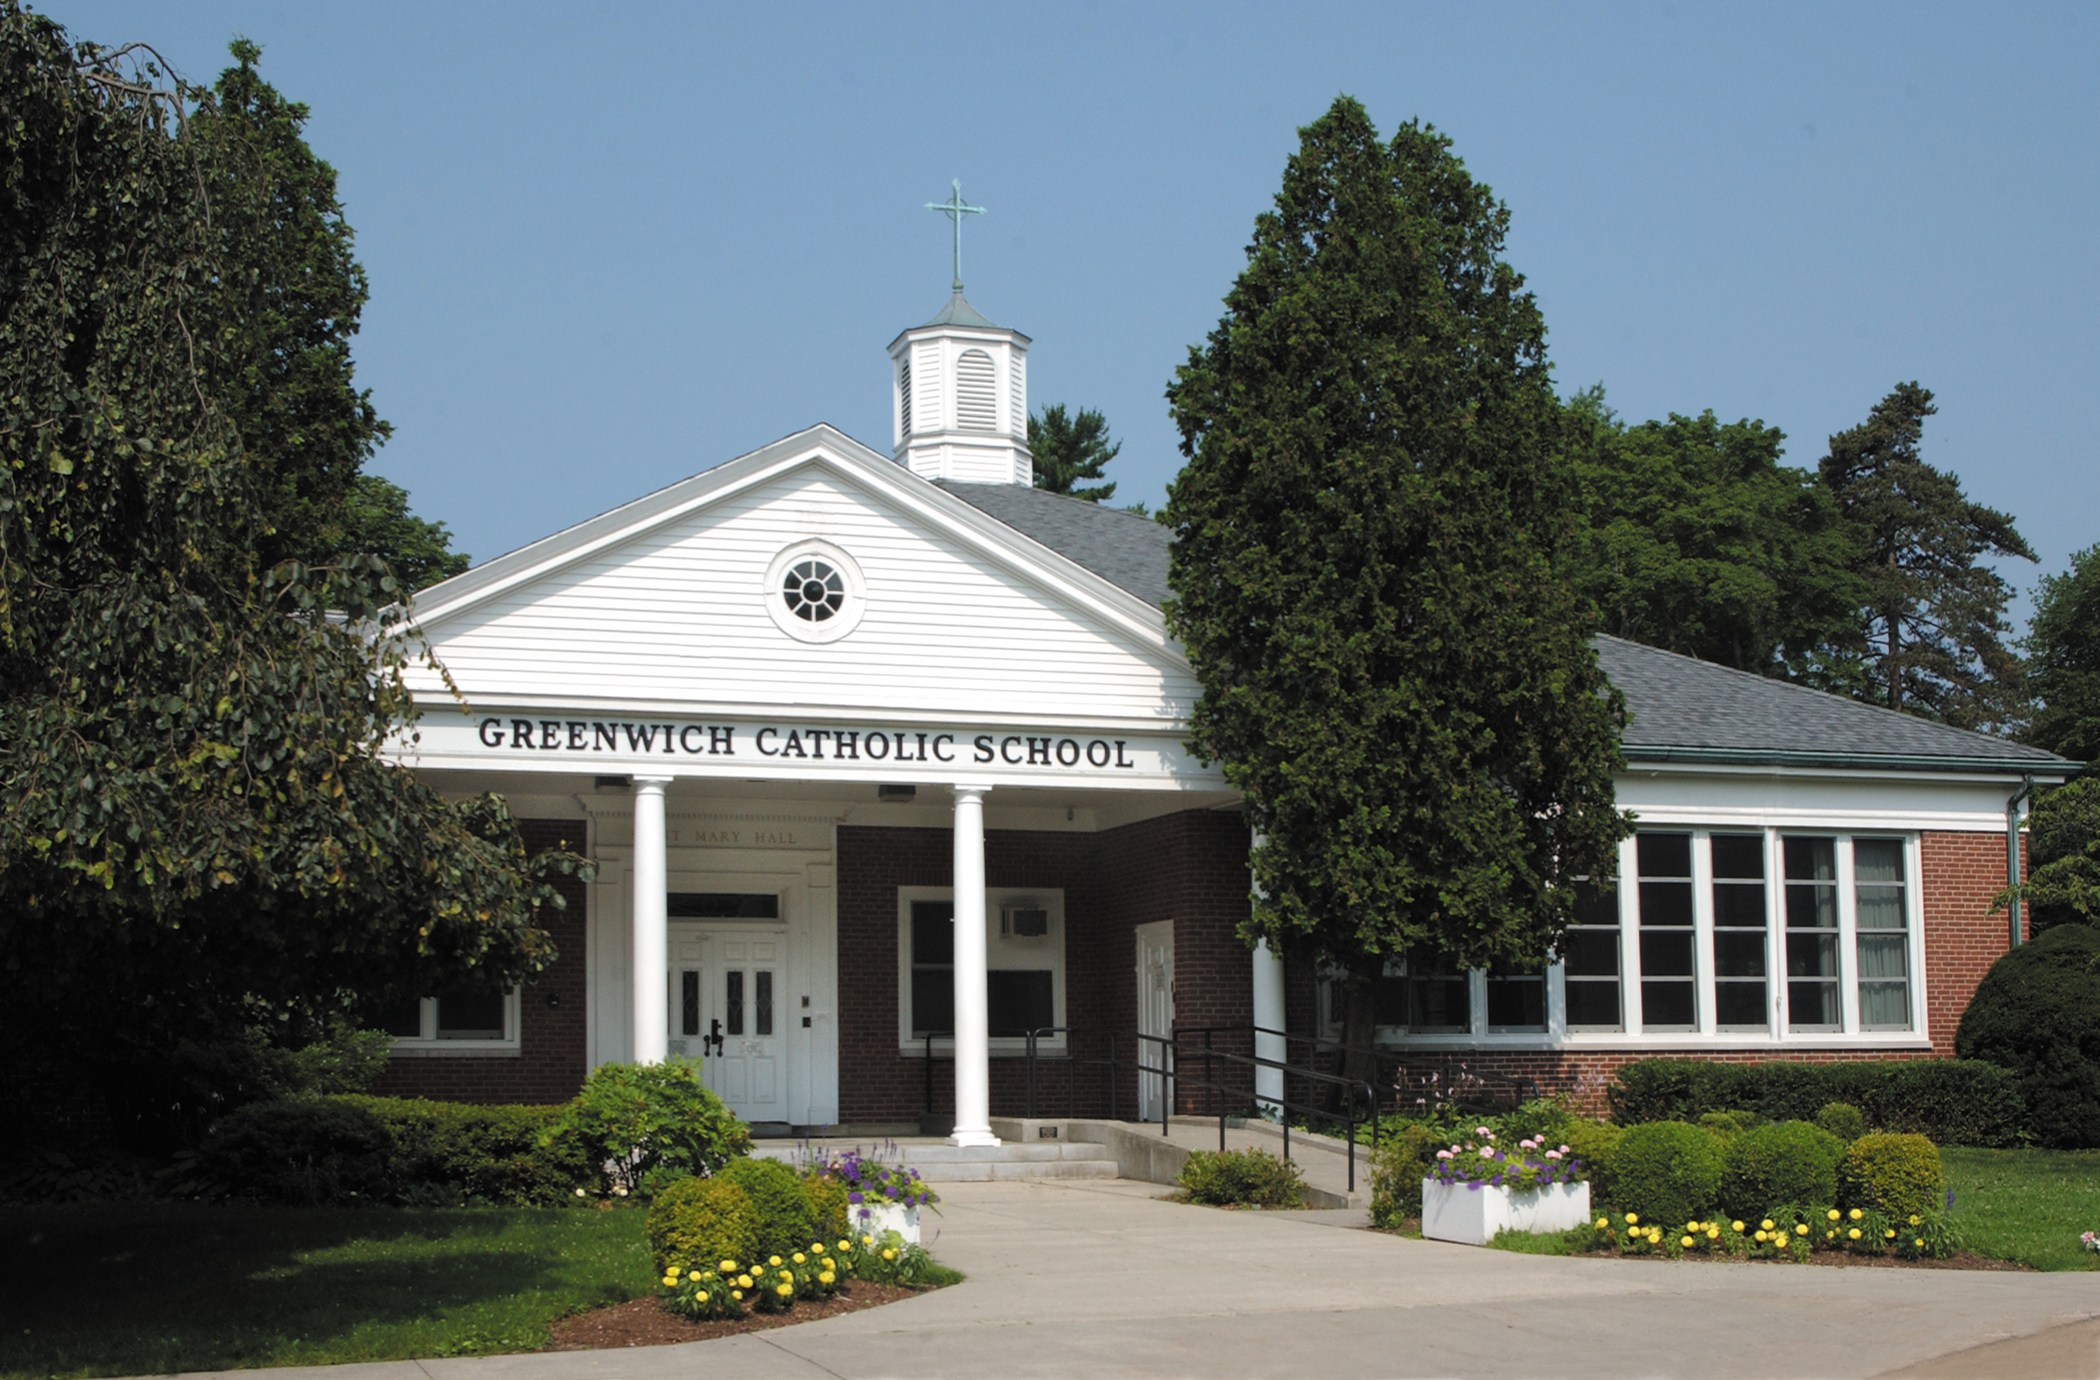 Greenwich catholic